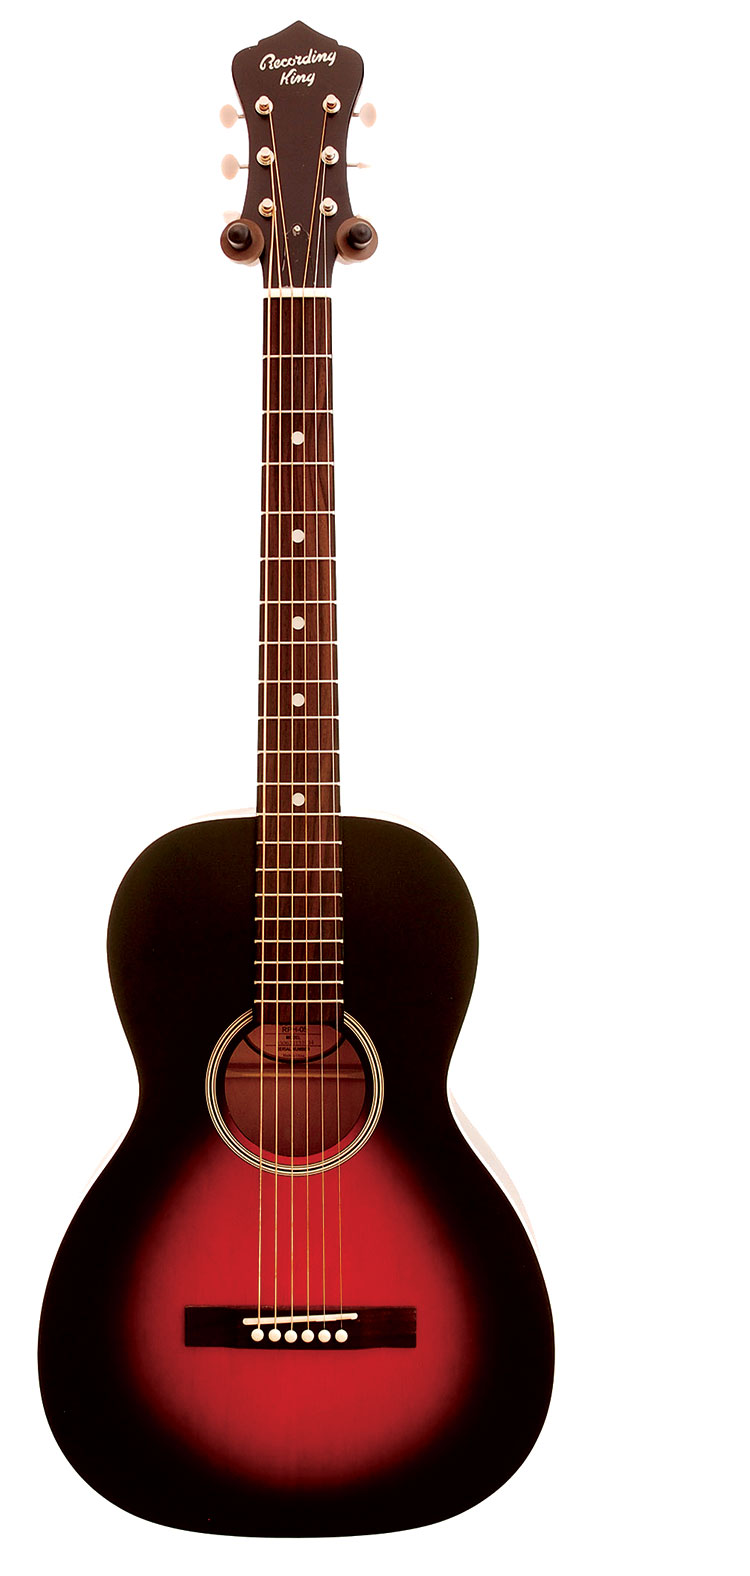 Parlor Pickin The 2015 Guide To Buying A Guitar Acoustic Alvarez Electric Wiring Diagram Here Are Several And Small Size Guitars Ranging From Budget Models High End Instruments